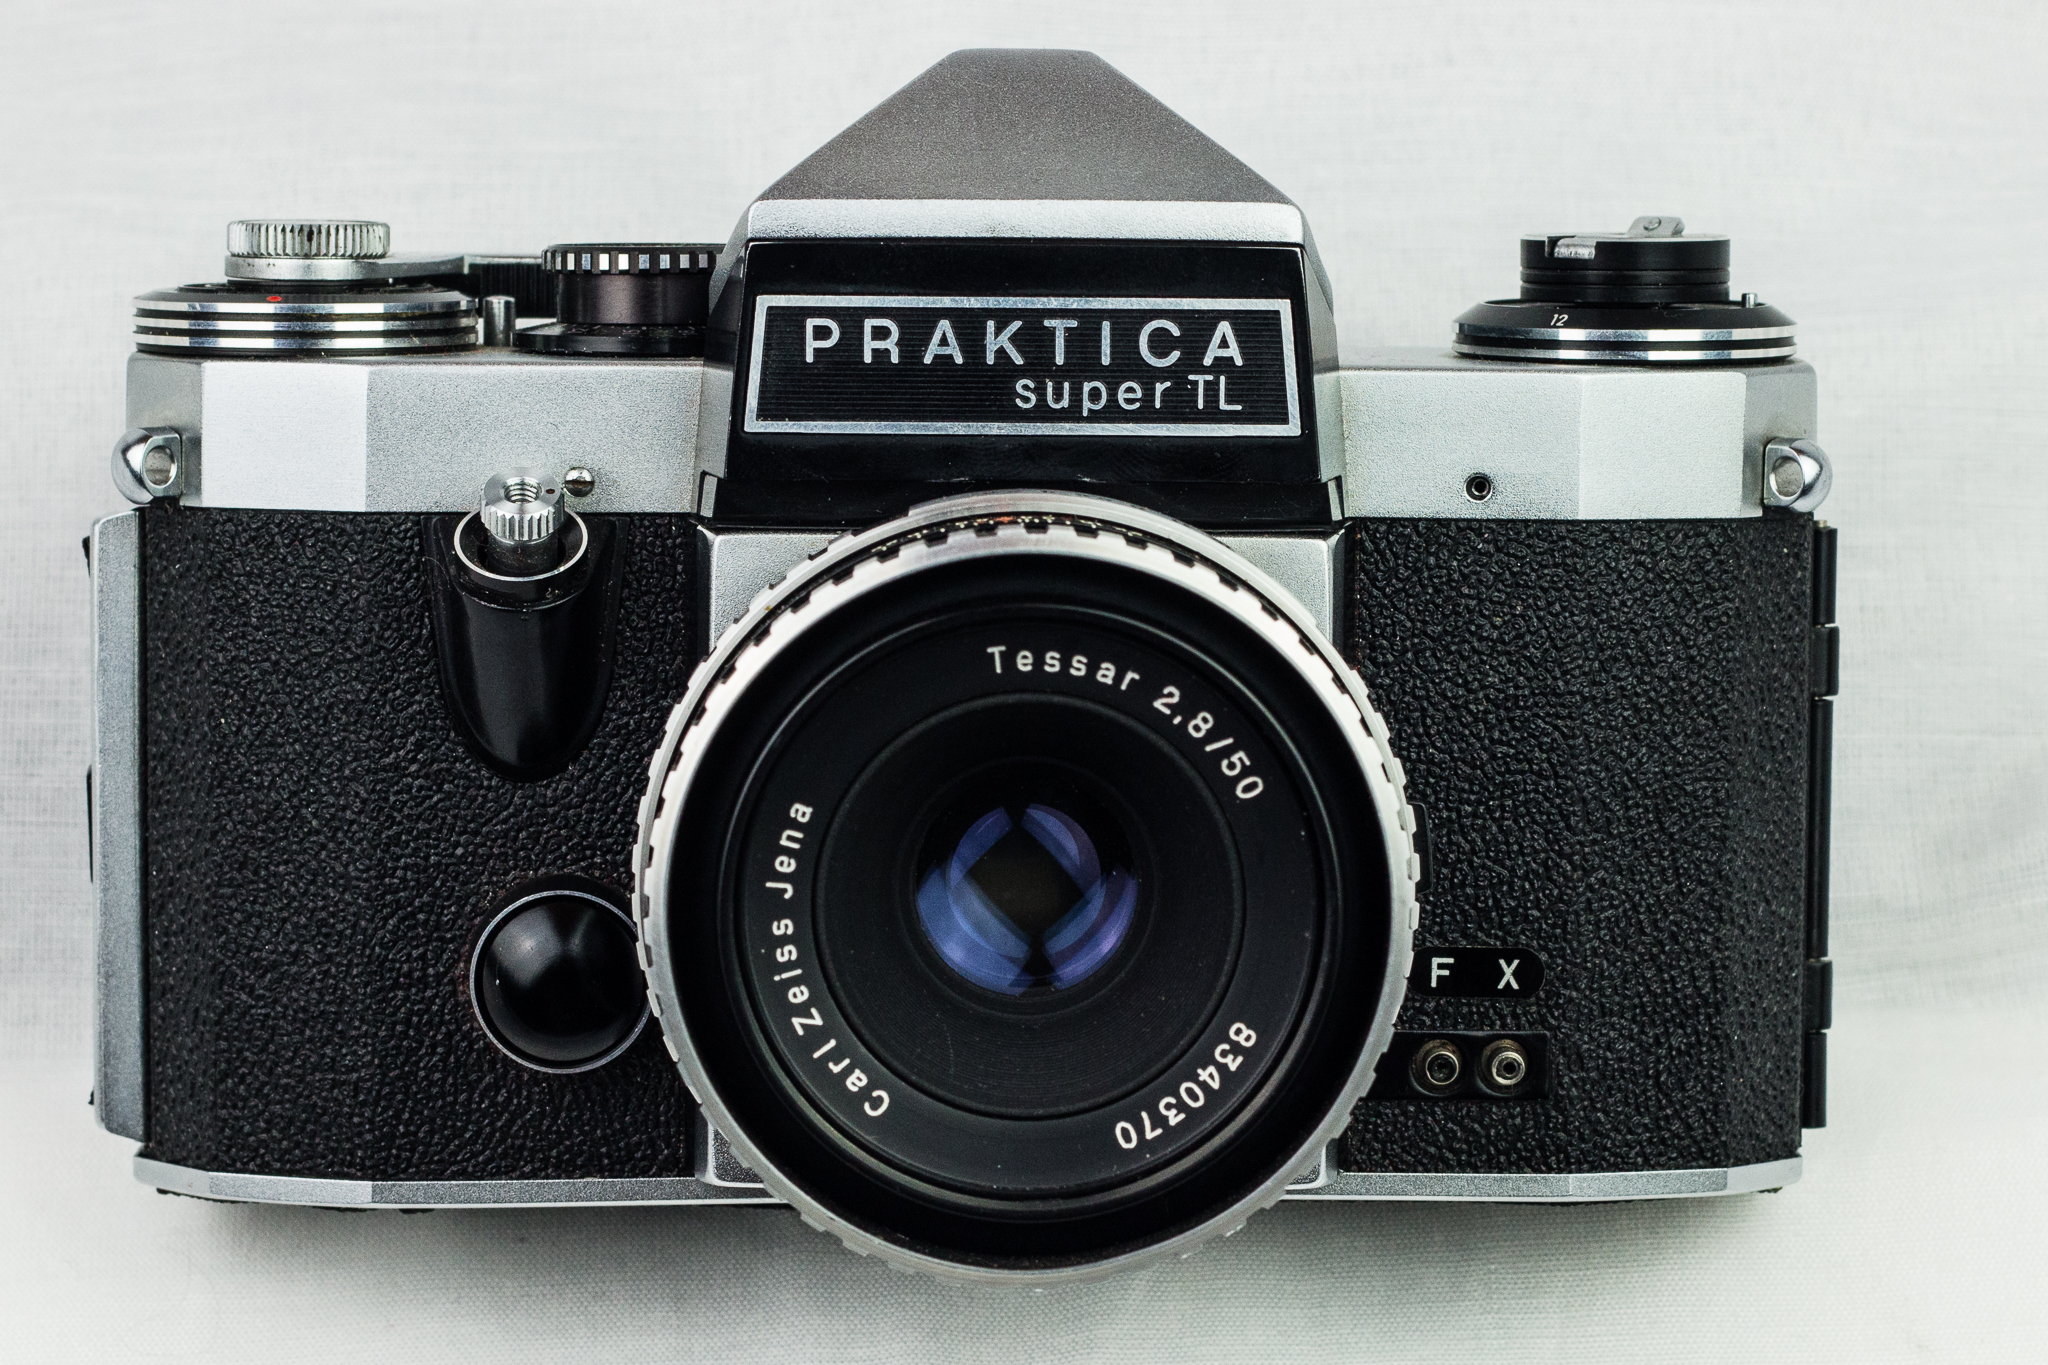 Praktica super tl serialforeigner.photo